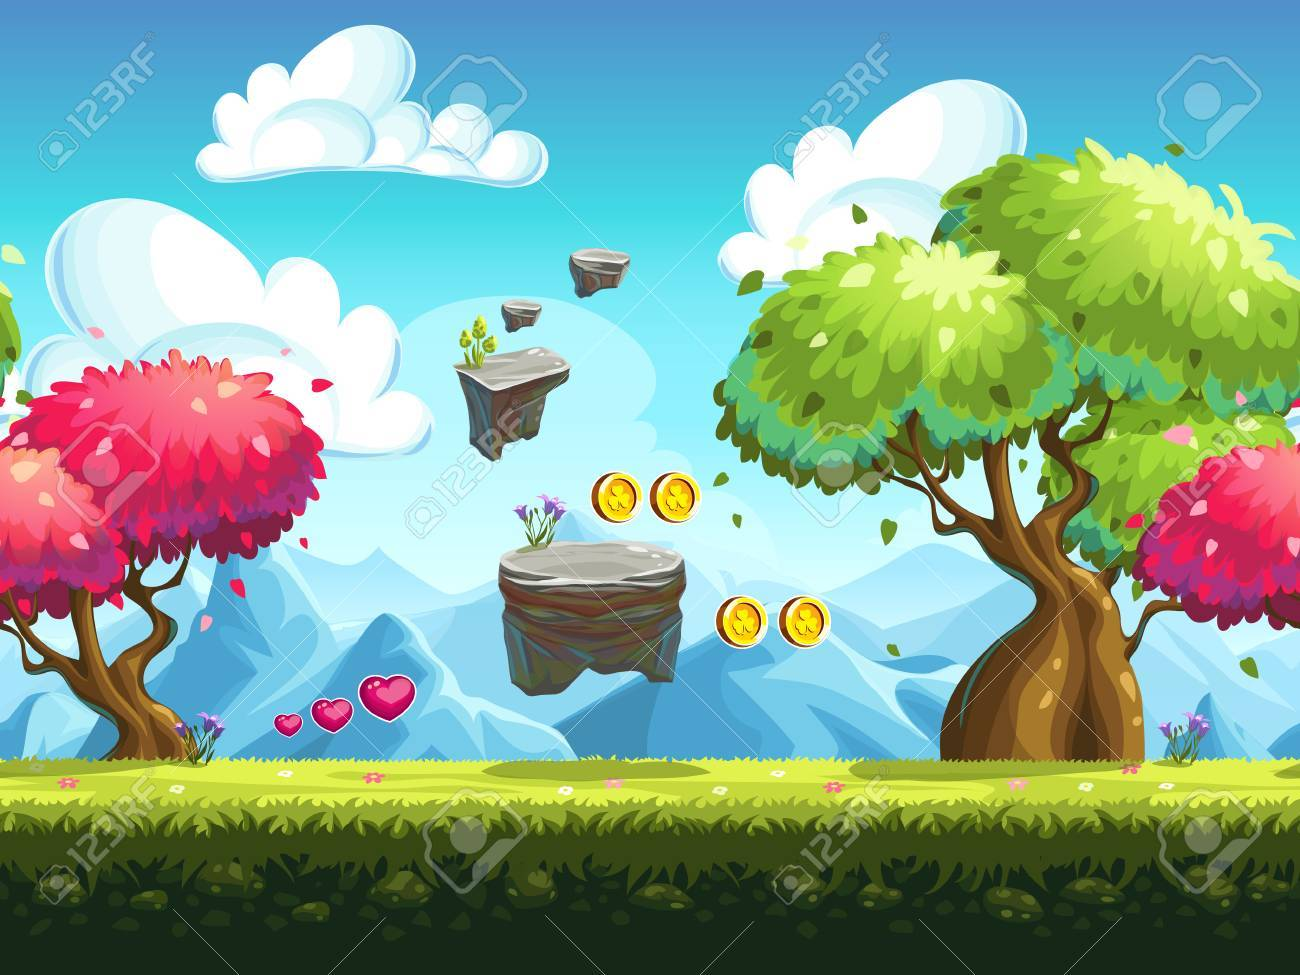 Seamless background flying rocks and colorful trees in the forest against the backdrop of the mountains - 51305169